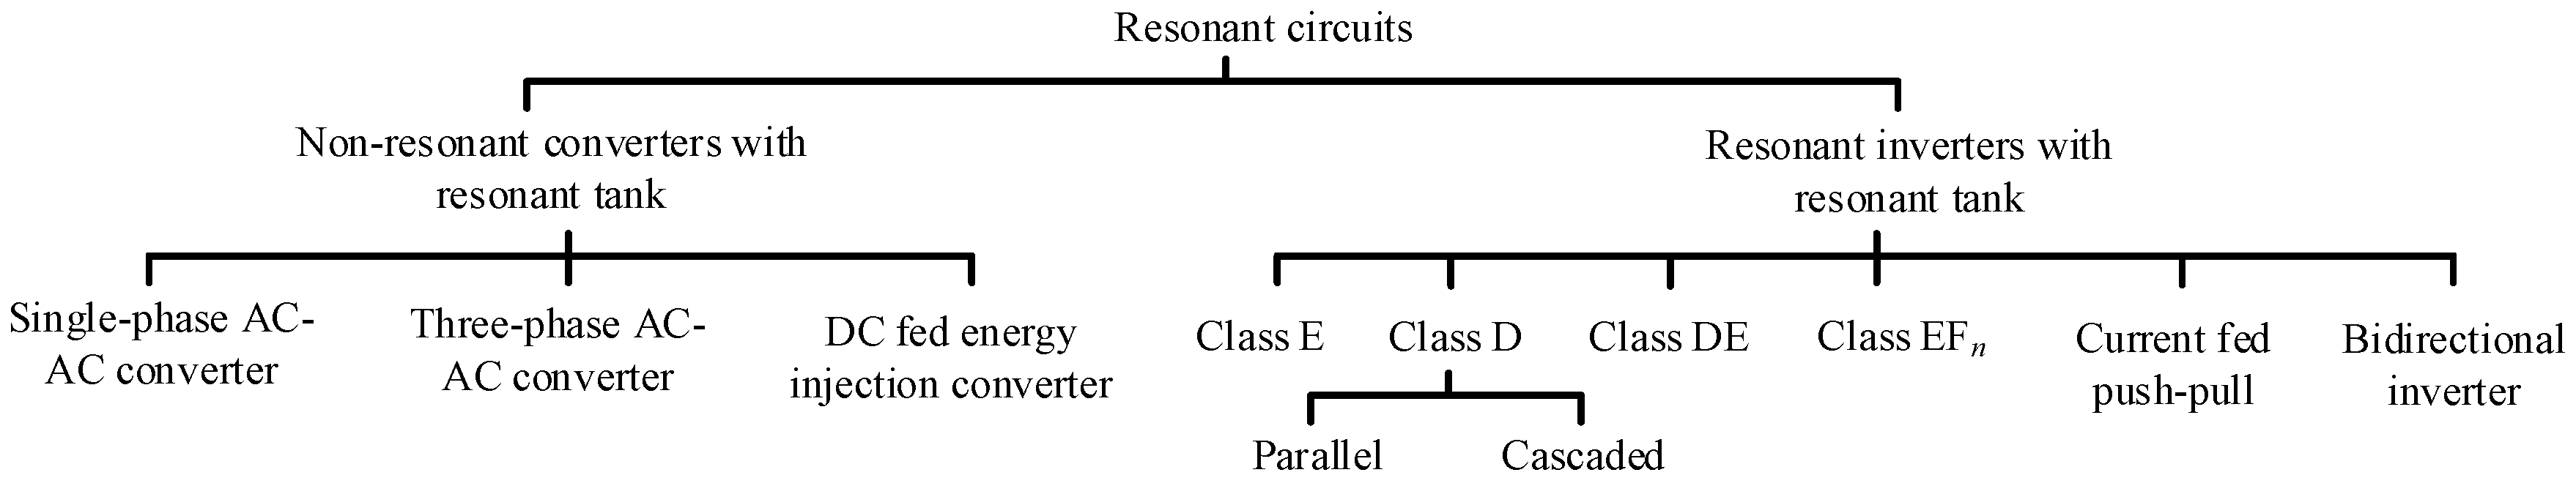 Energies Free Full Text An Overview Of Resonant Circuits For Circuit Used To Measure The Powertransfer From A Battery Is Shown In No